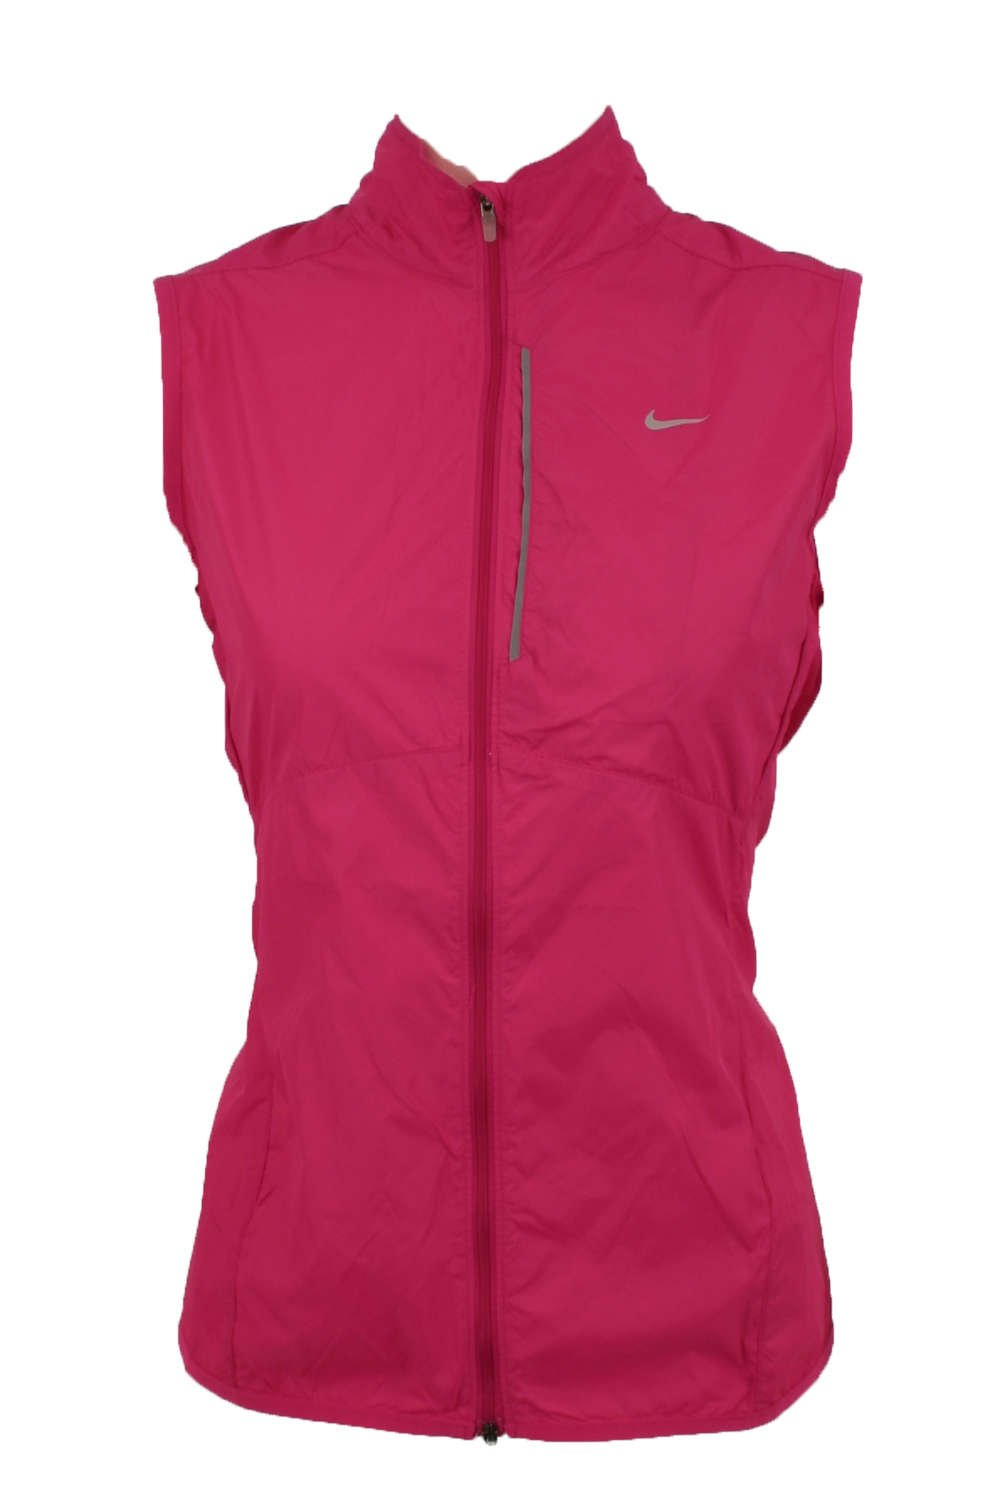 Women's XsAmazon Microfibre Vestcherry uk Nike co UMGSVqzp